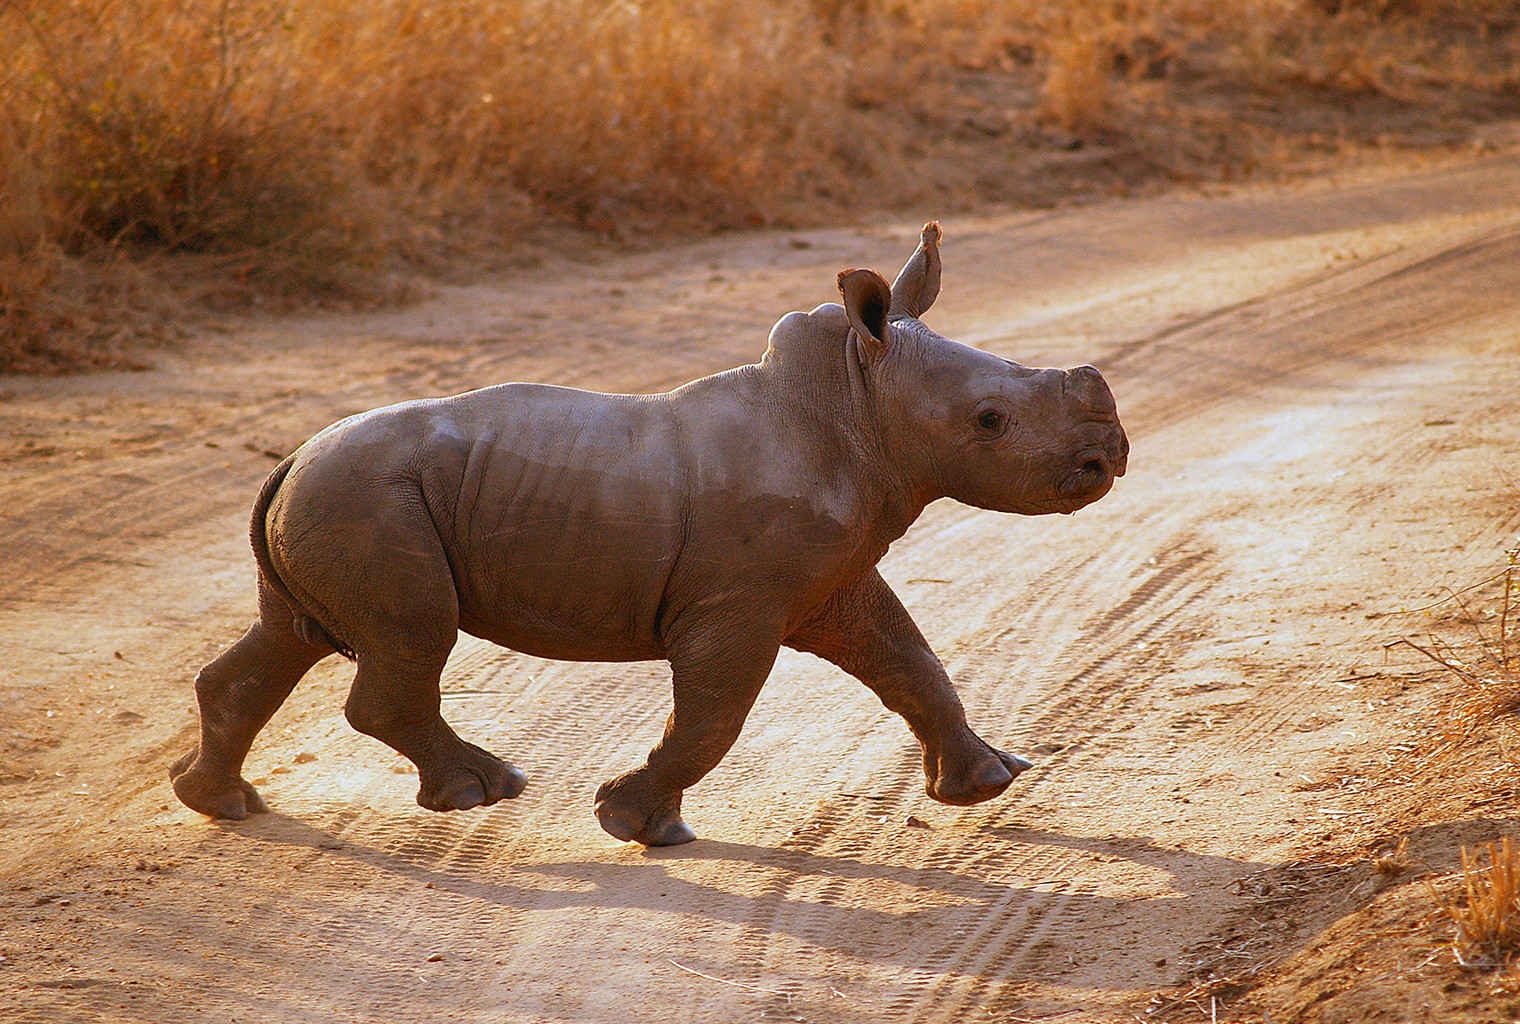 Tswalu-Kalahari-South-Africa-Blach-Rhino-Baby